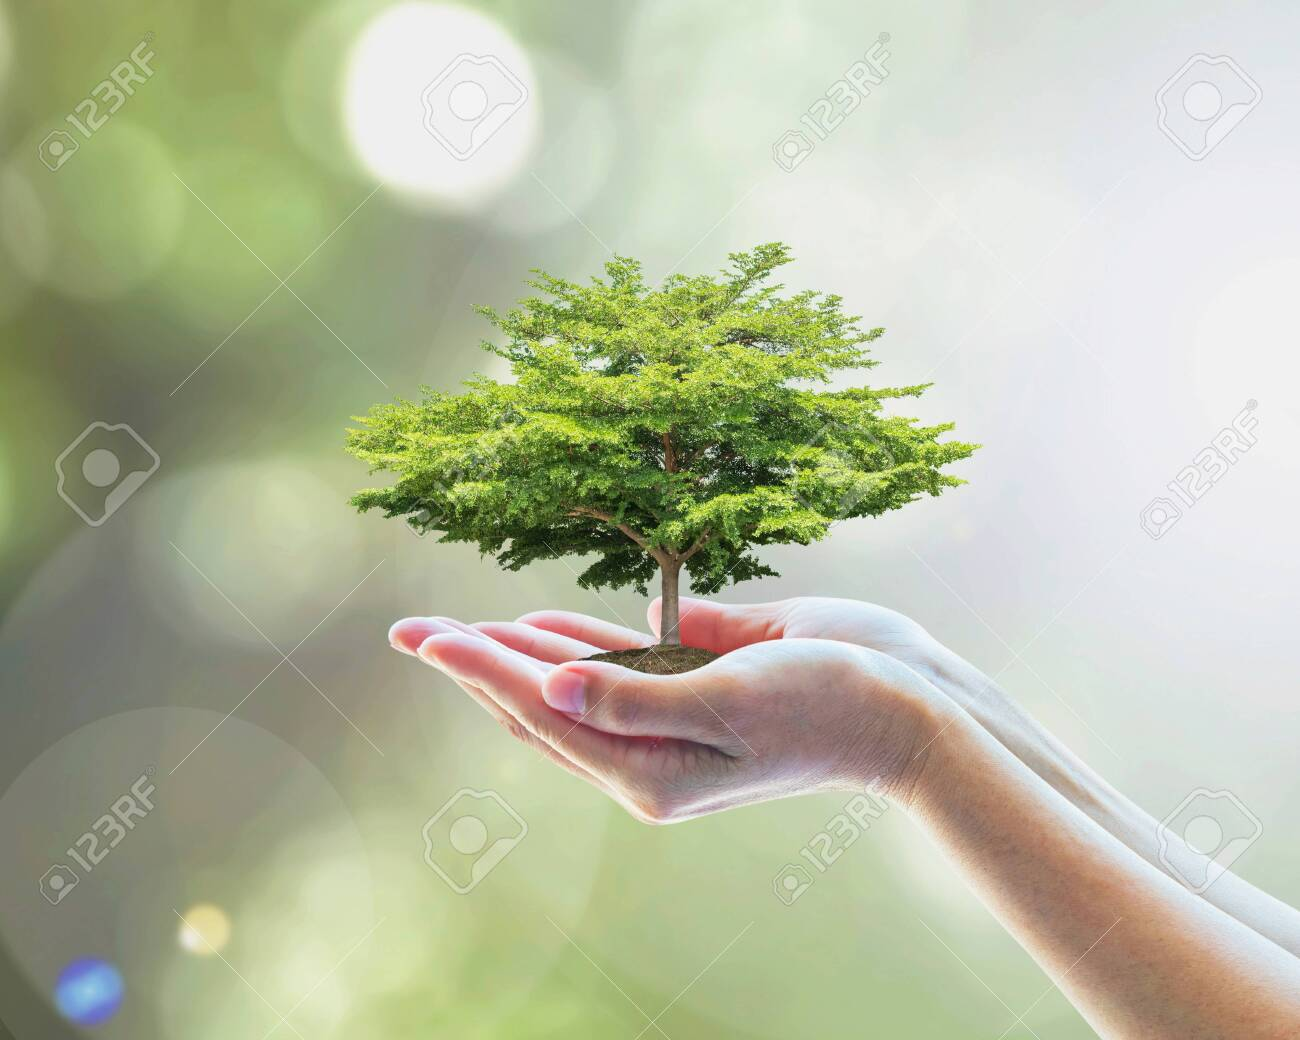 Sustainable environment, saving environmental ecosystem of forest, and go green concept with tree planting on volunteer's hands - 133216525